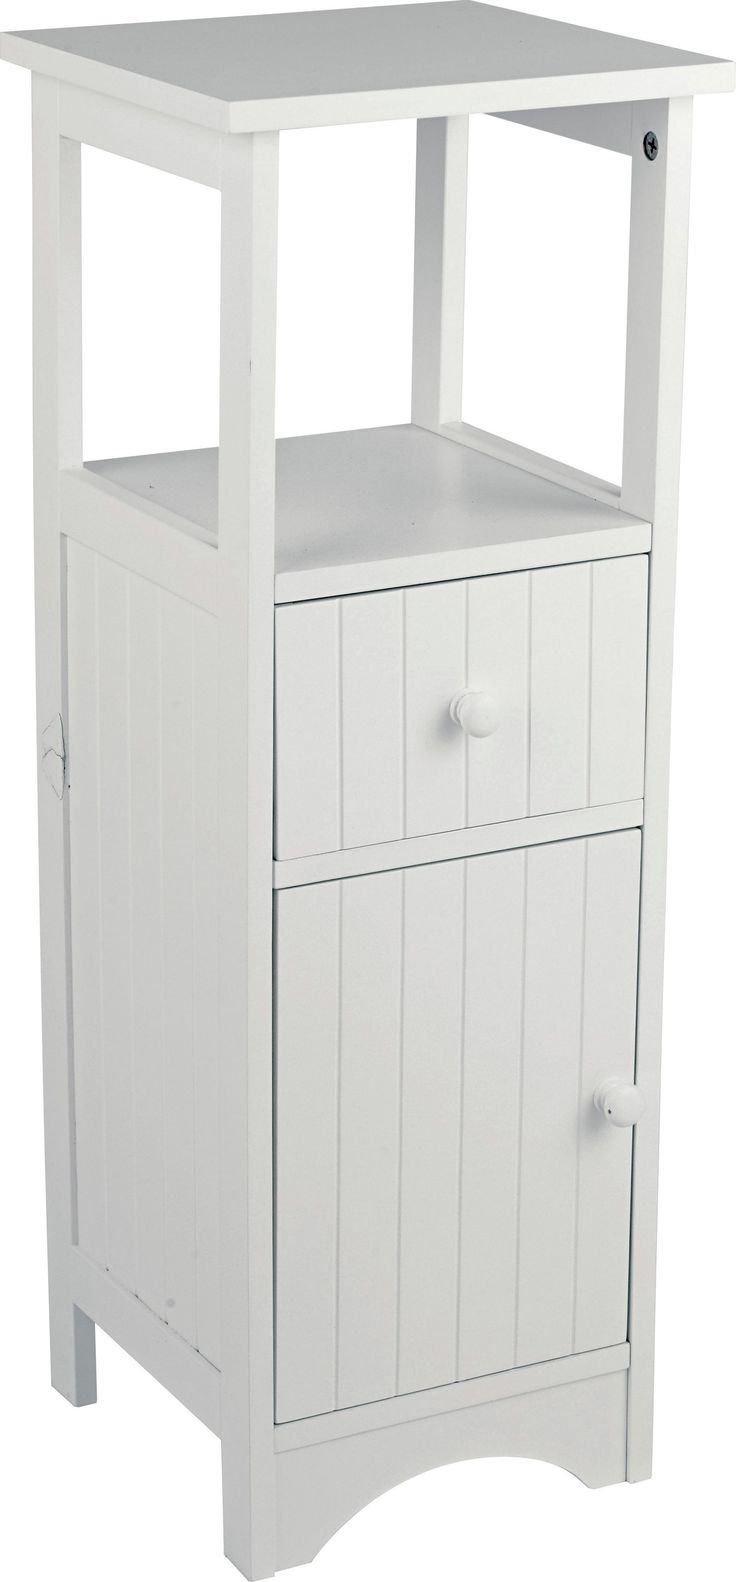 Buy bathroom cabinets at argos co uk your online shop for home and - Buy Home Tongue And Groove 2 Drawer Storage Unit White At Argos Co Unit Bathroombathroom Shelvesbathroom Cabinetsdrawer